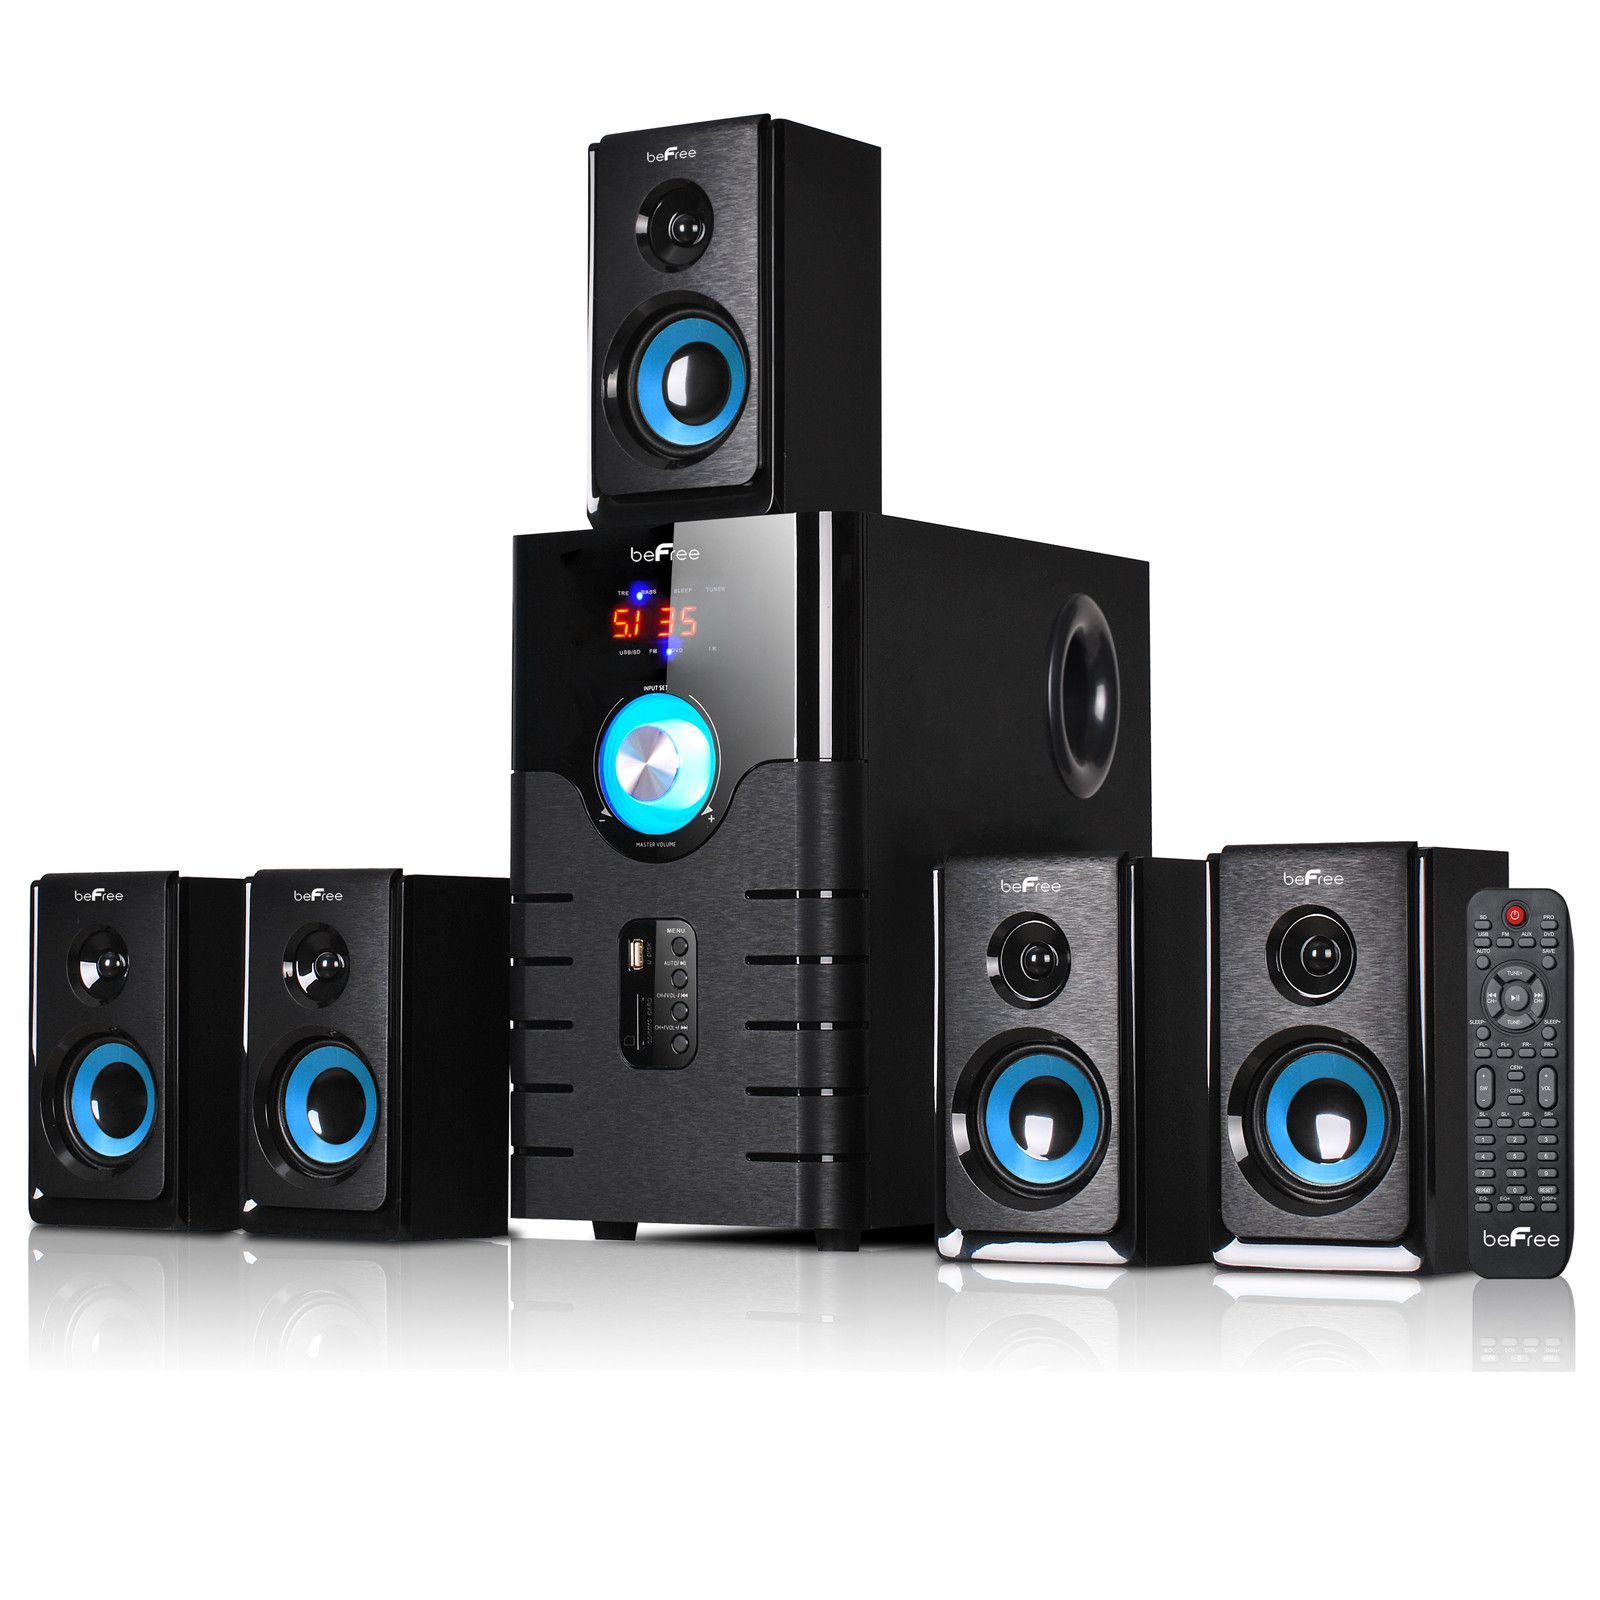 Complete Your Home Theater Experience With Stunning Sound From This Nakamichi My Mini Plus Speaker Fm Radio Pink 51 Channel Bluetooth System Connect A Tv Dvd Player Video Game